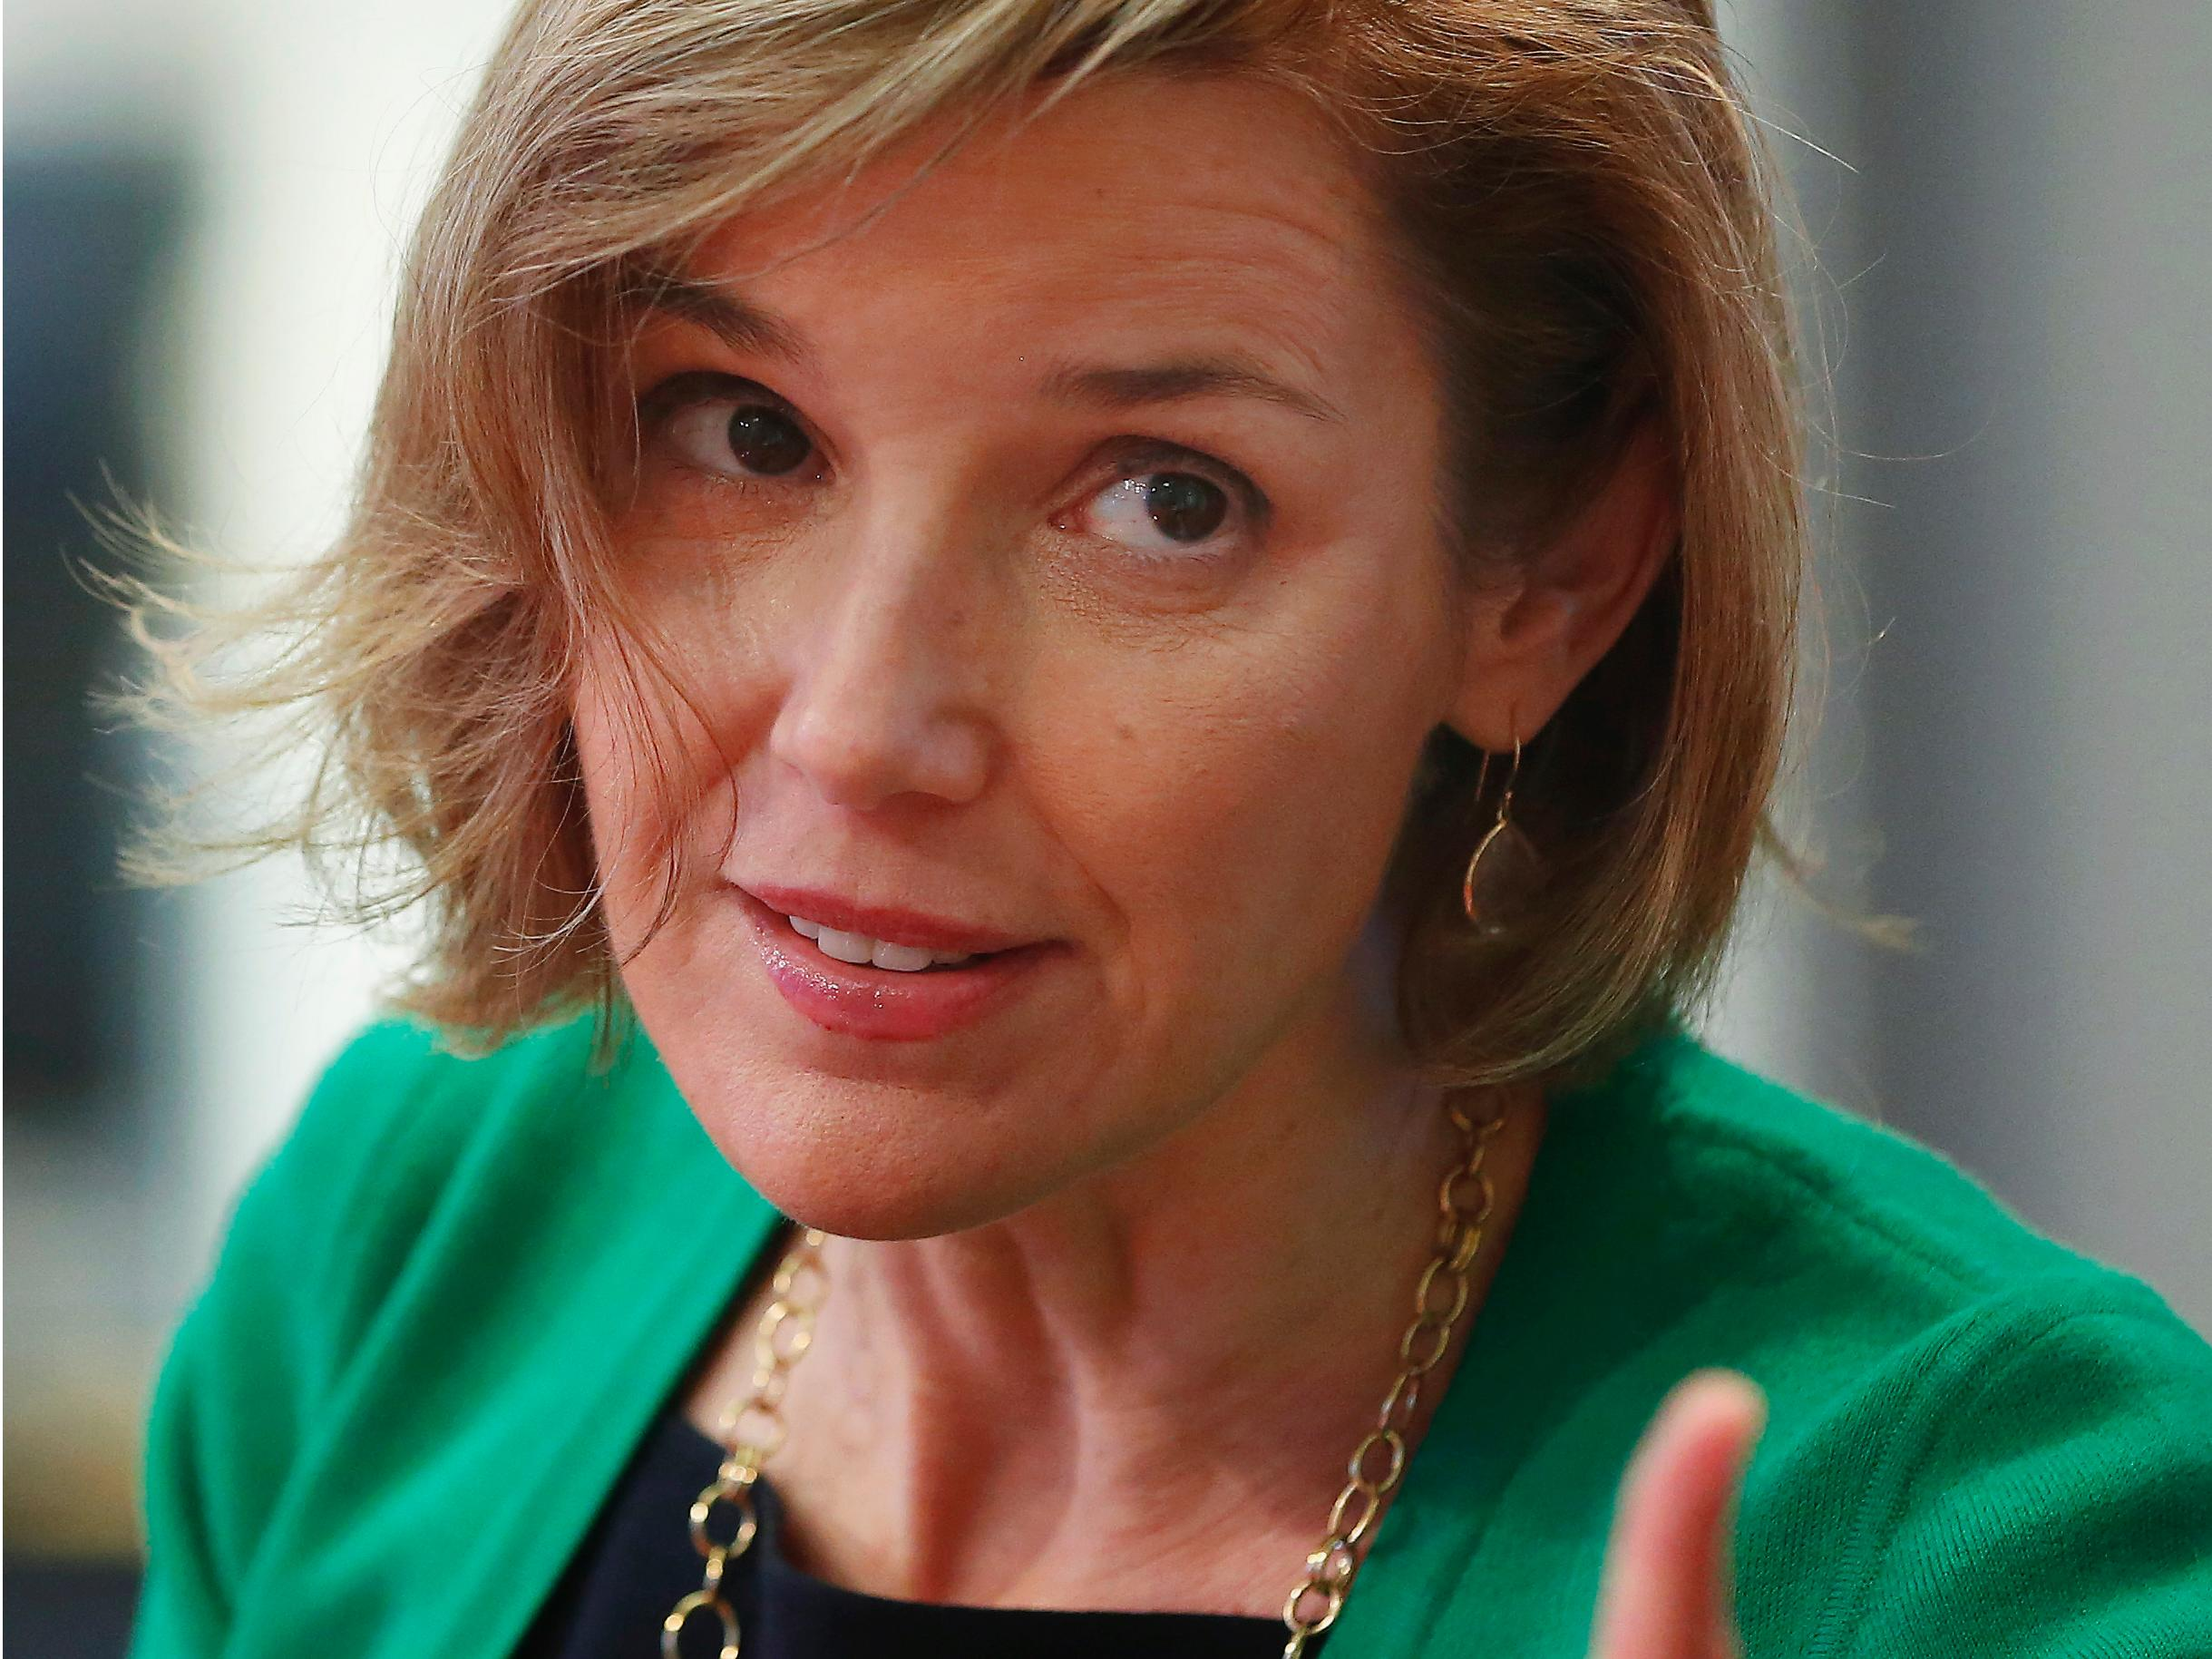 SALLIE KRAWCHECK: My advice for women wanting to break into Wall Street or Silicon Valley